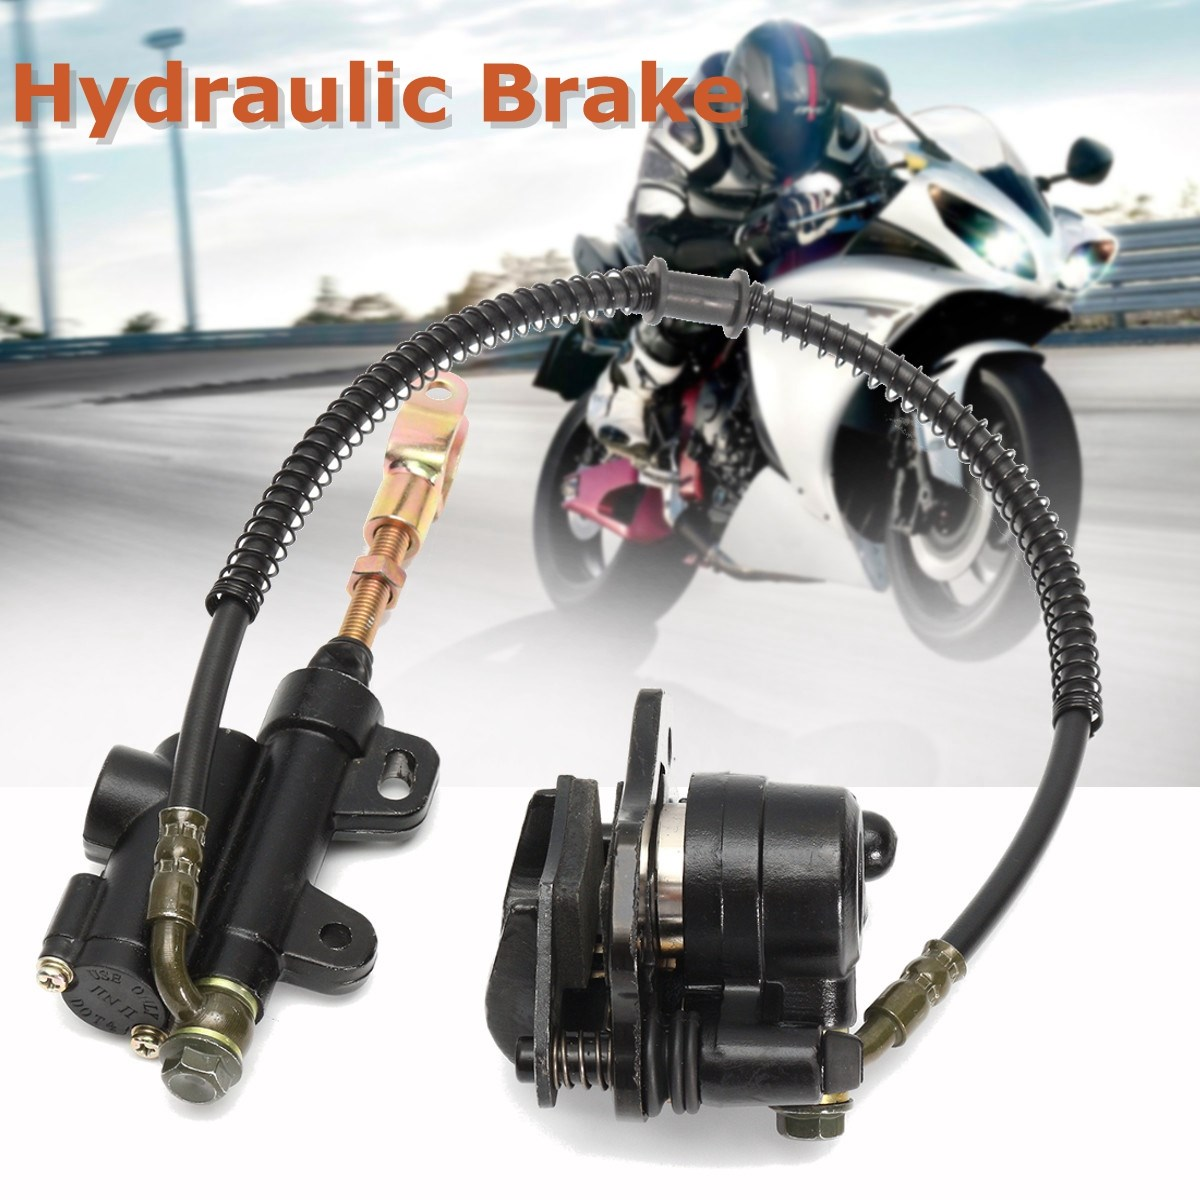 Hydraulic Rear Disc Brake Caliper System For PRO Quad Dirt Bike ATV 110cc 125cc fastnet force 10 rei paper only page 4